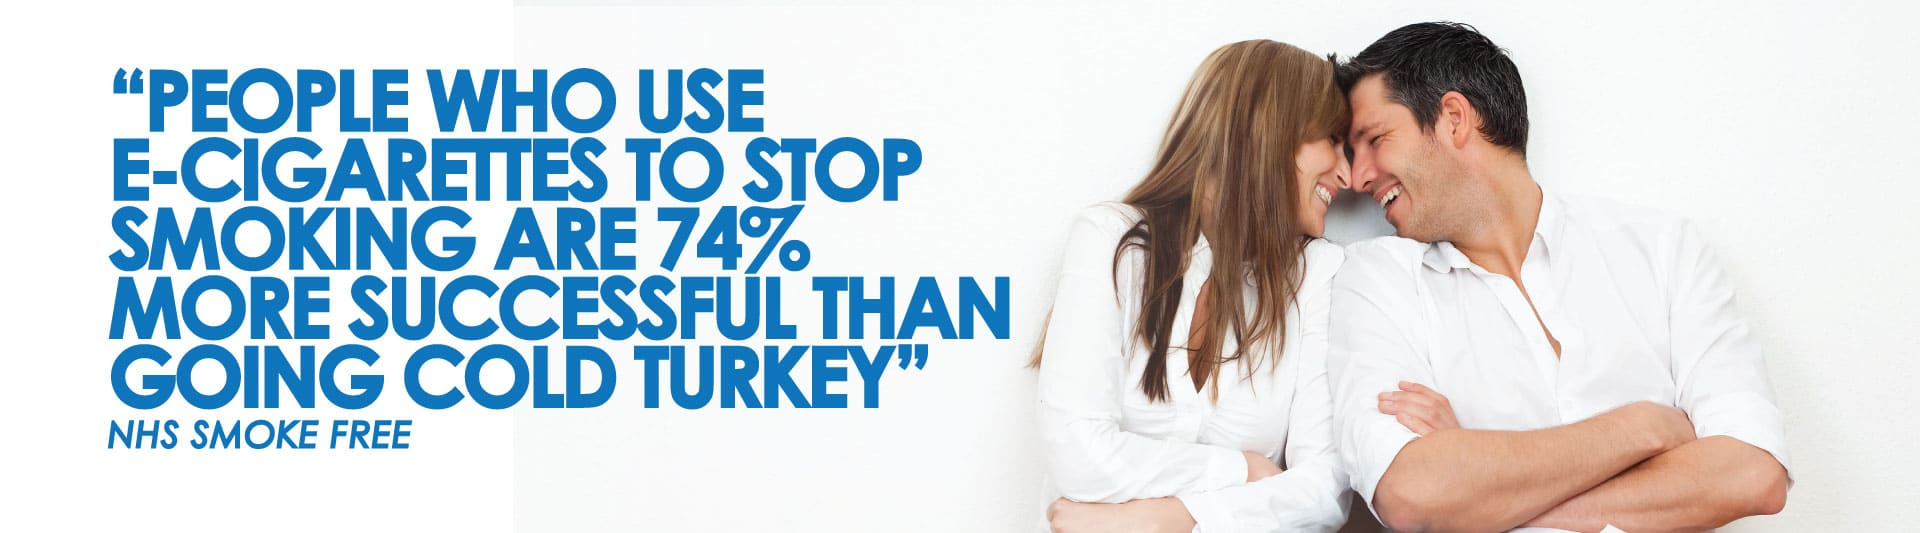 esta  NHS Stop Smoking Service found that adult smokers who quit smoking using an e-cigarette are 74% more successful than going cold turkey